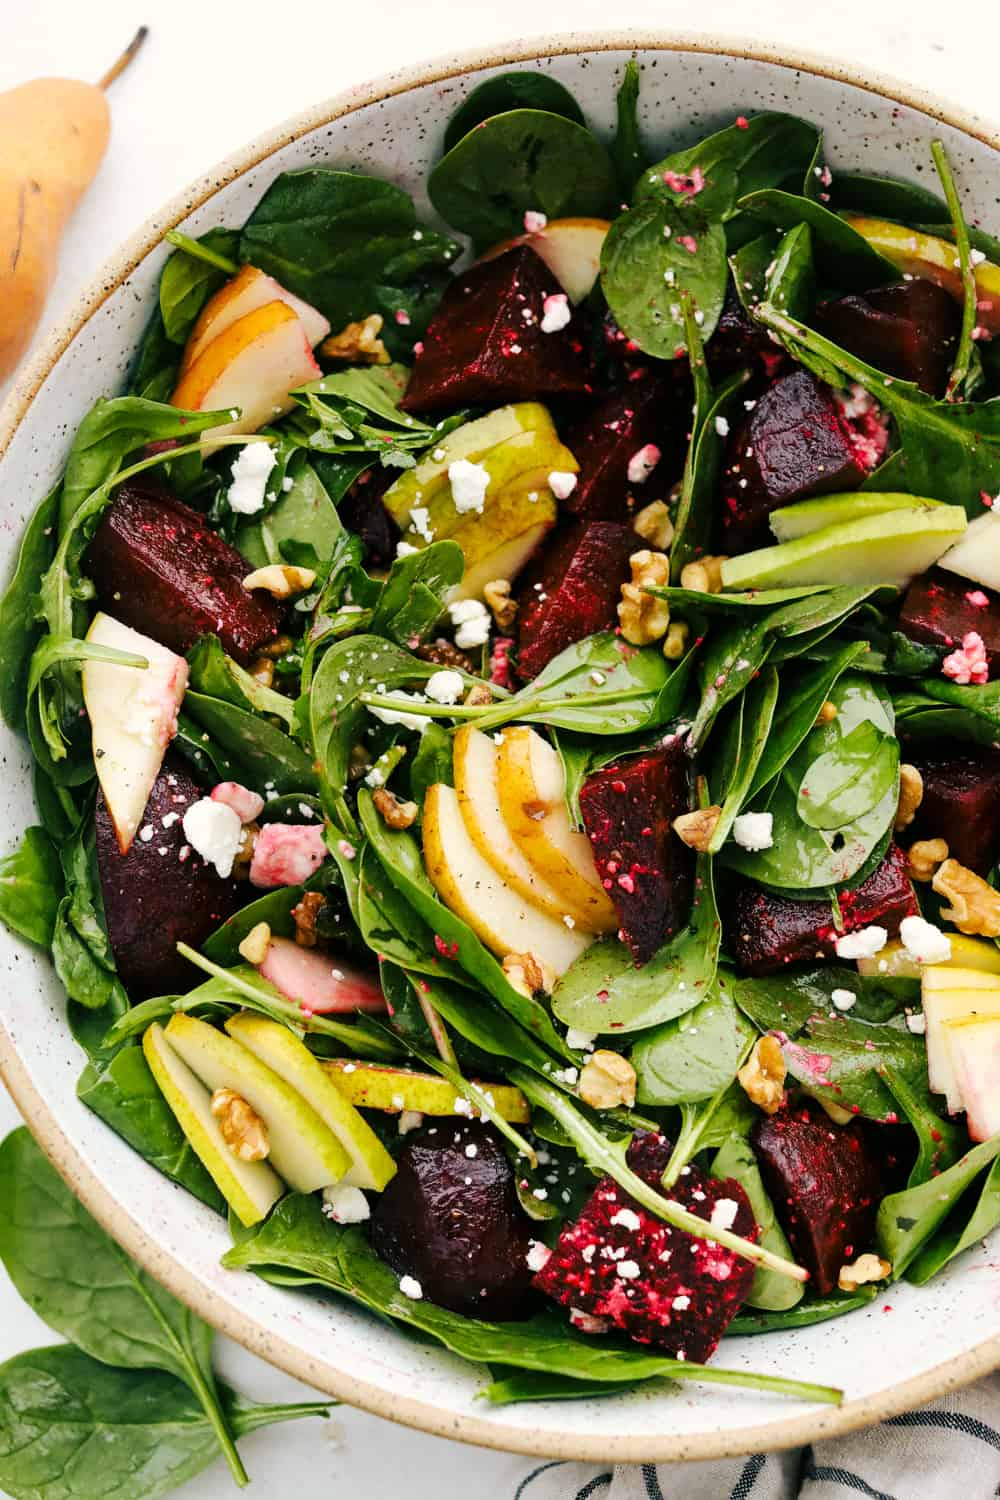 Pears and roasted beets in a bed of greens with walnuts and feta.